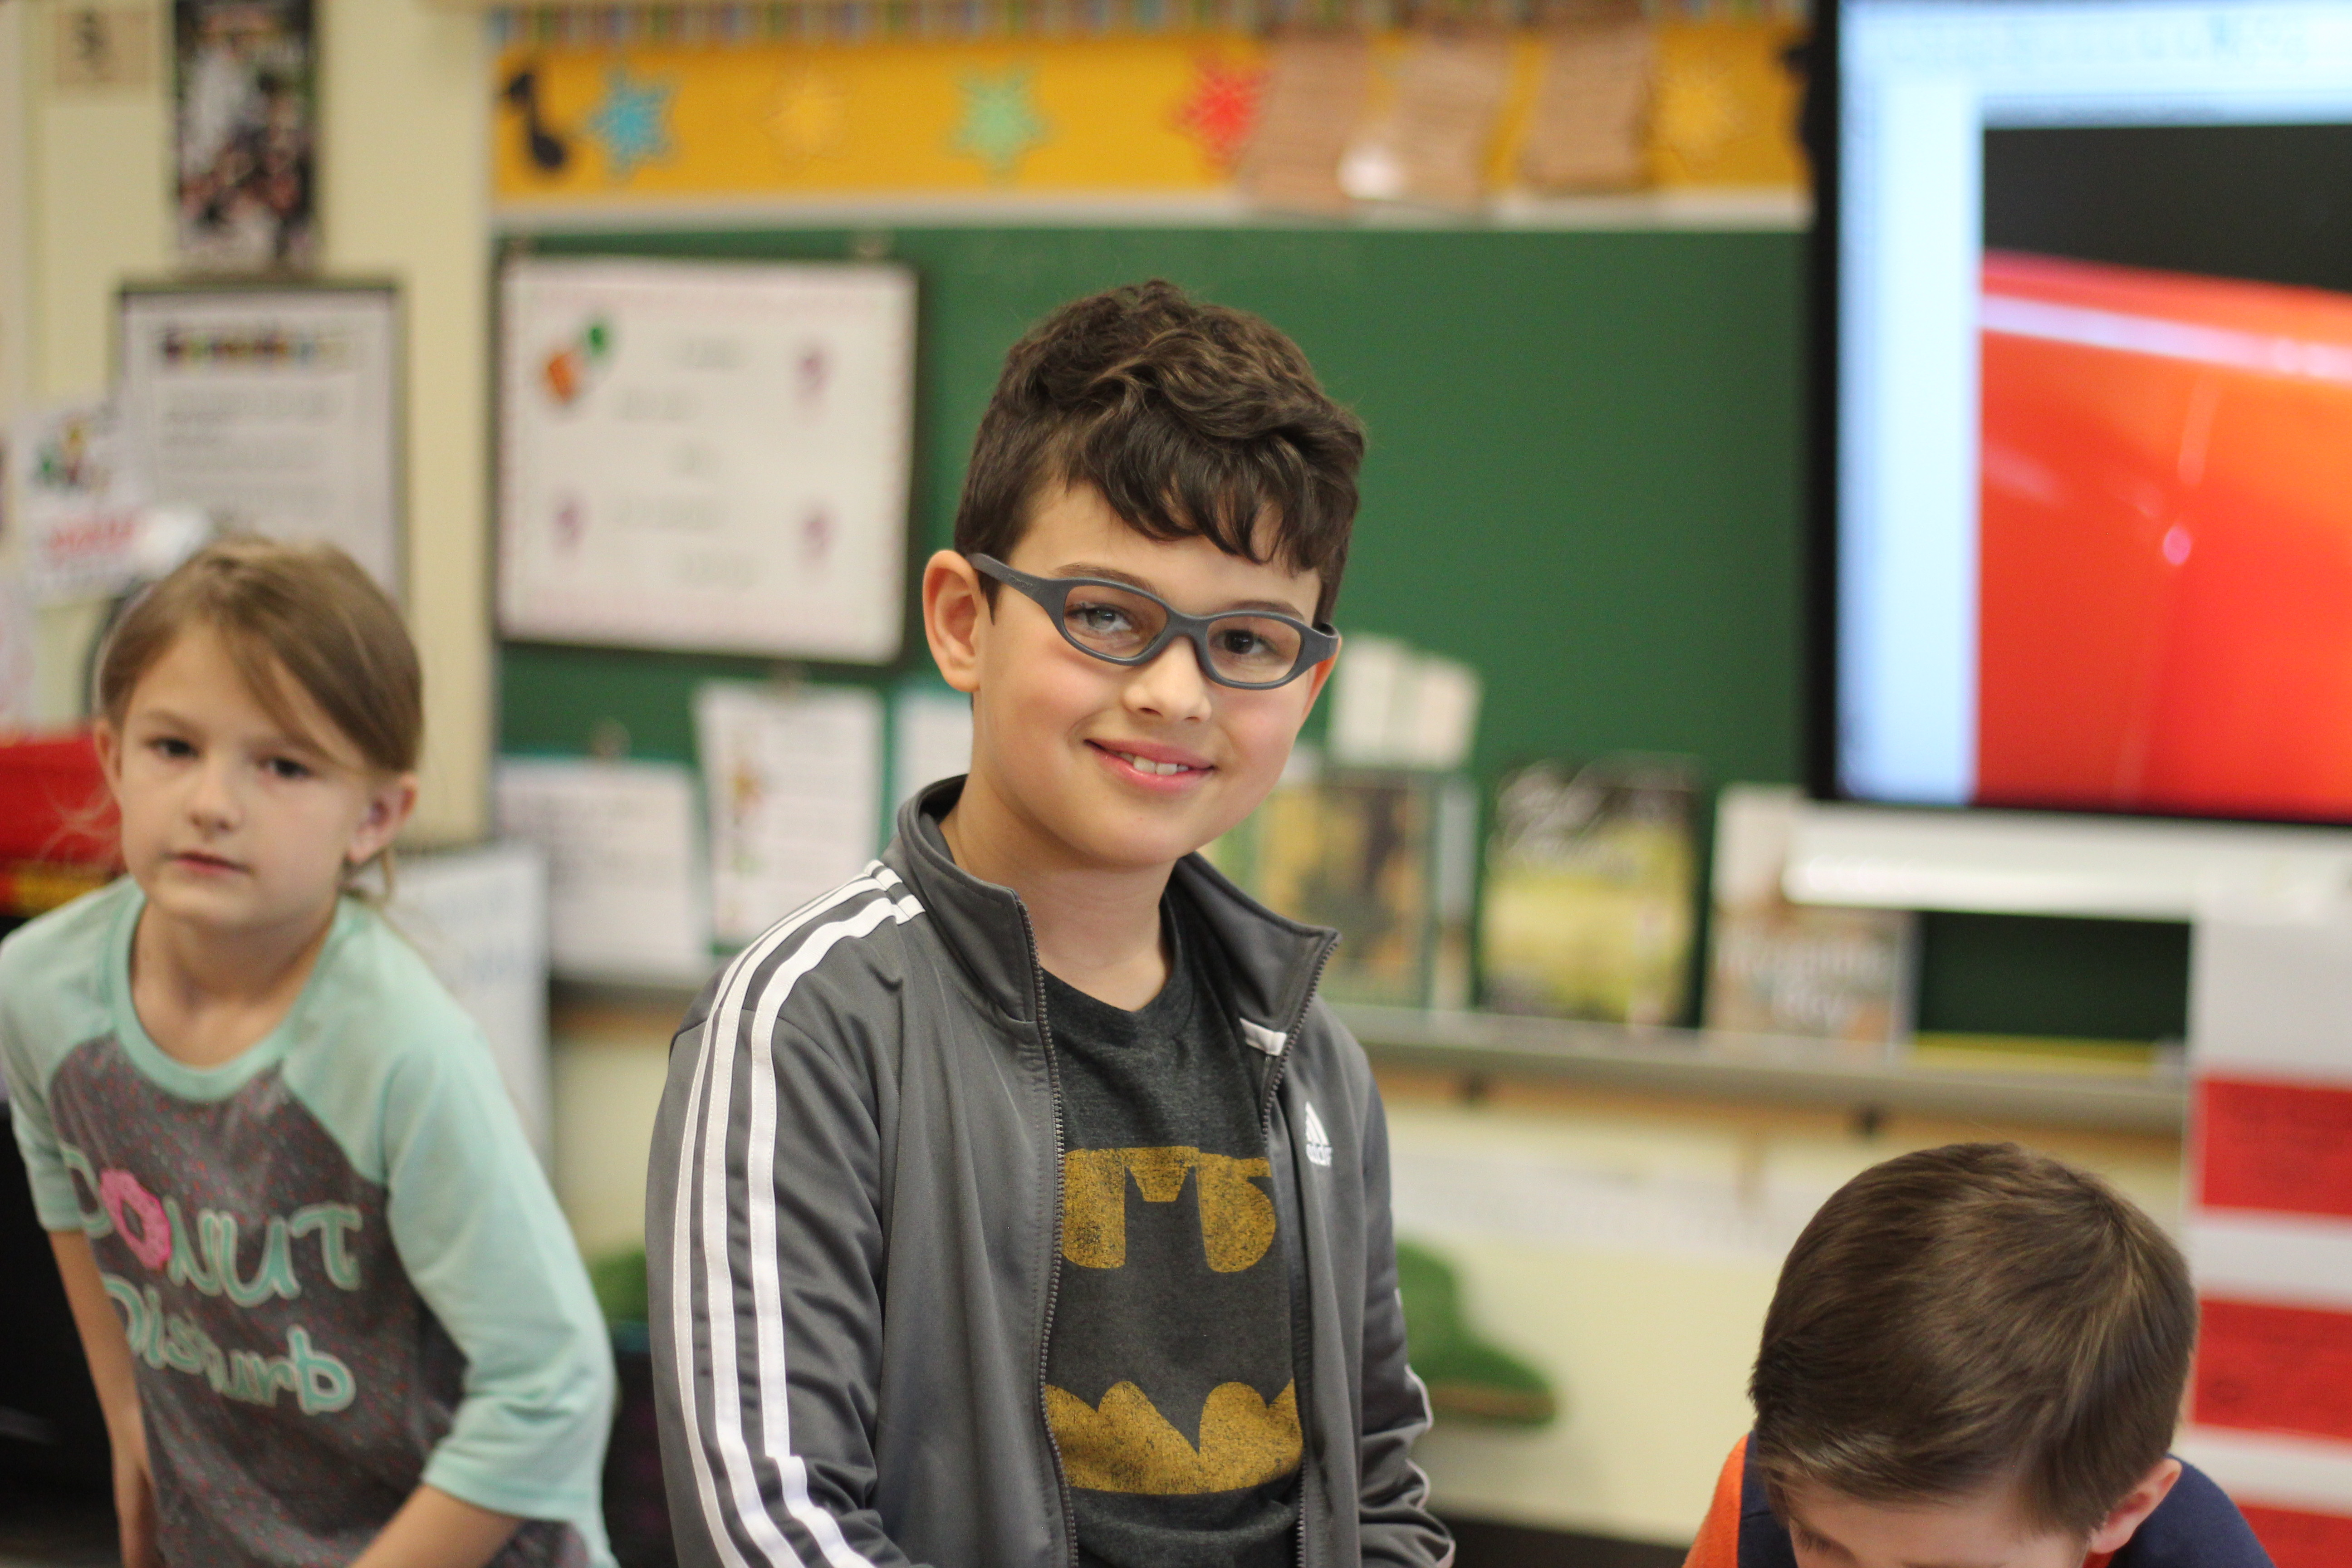 A student smiles at the camera.